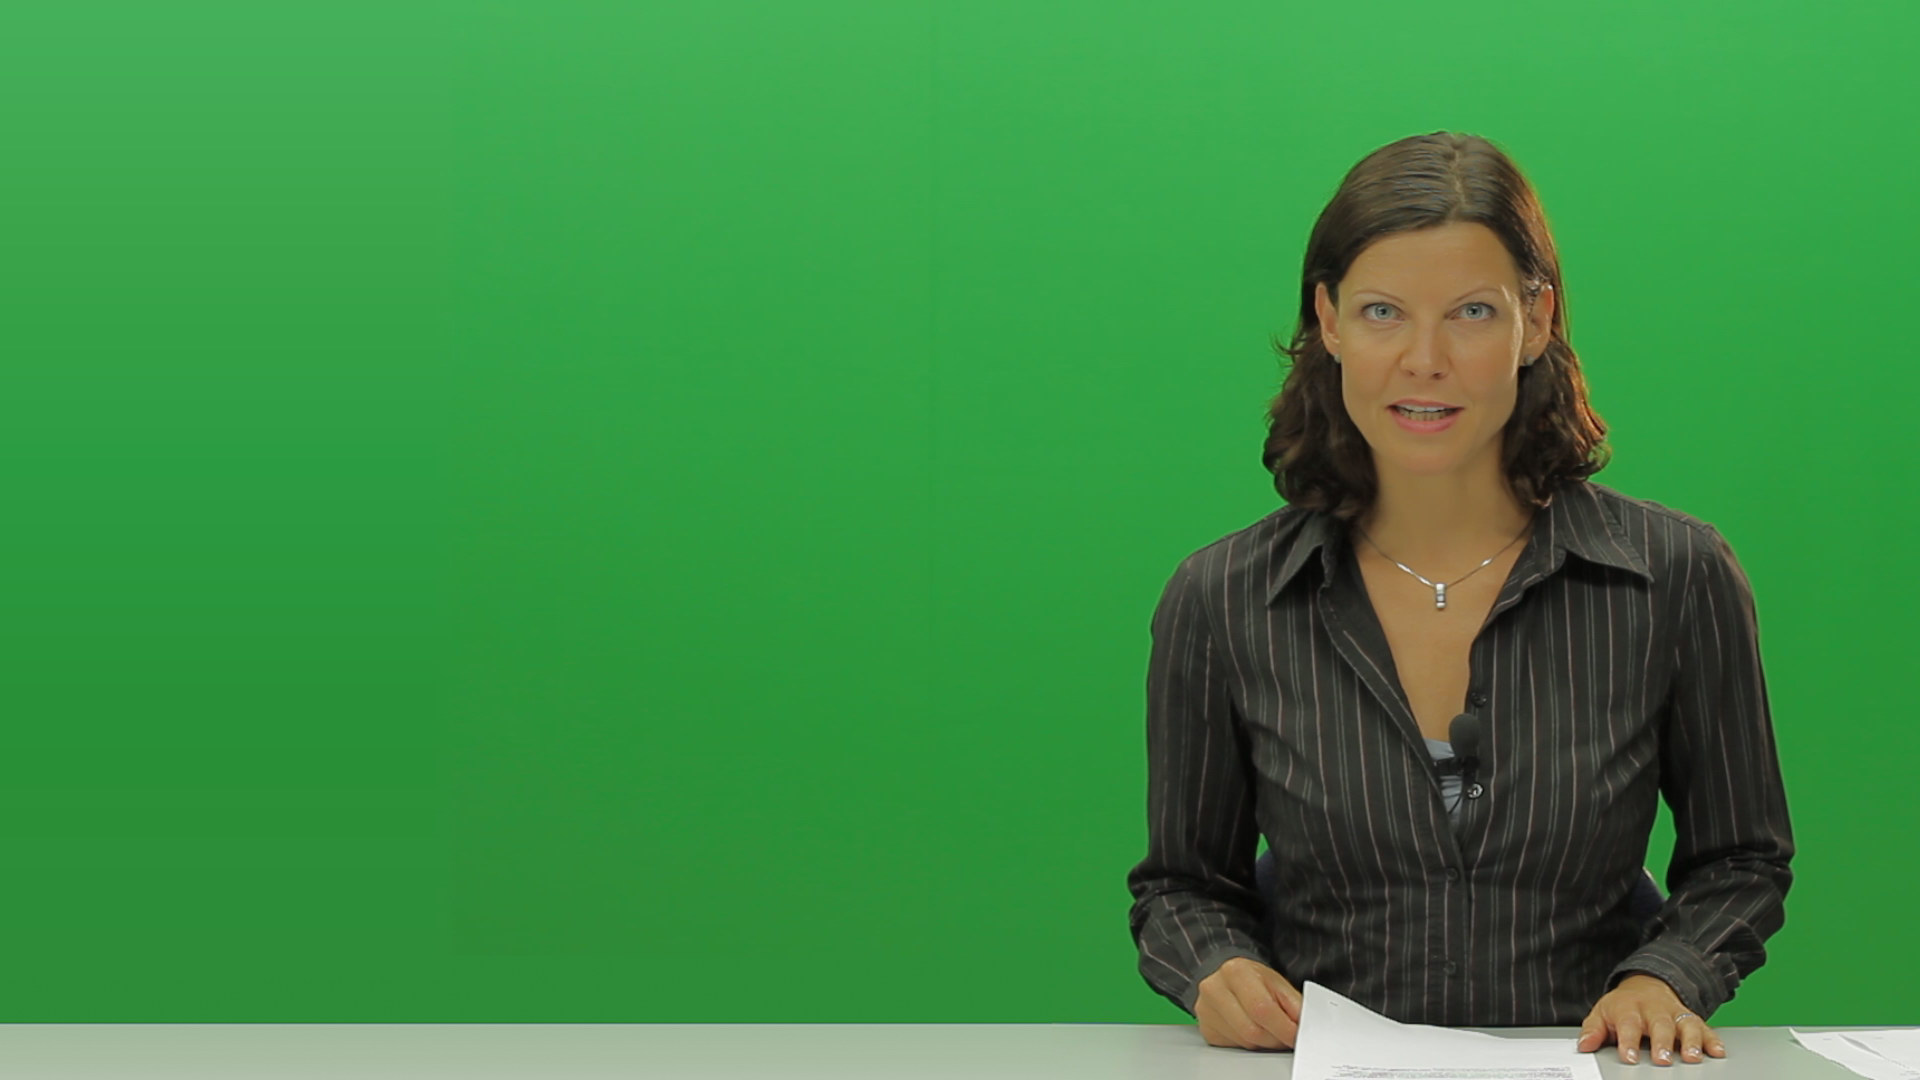 Greenscreen Clarissa Knorr as the Newscaster